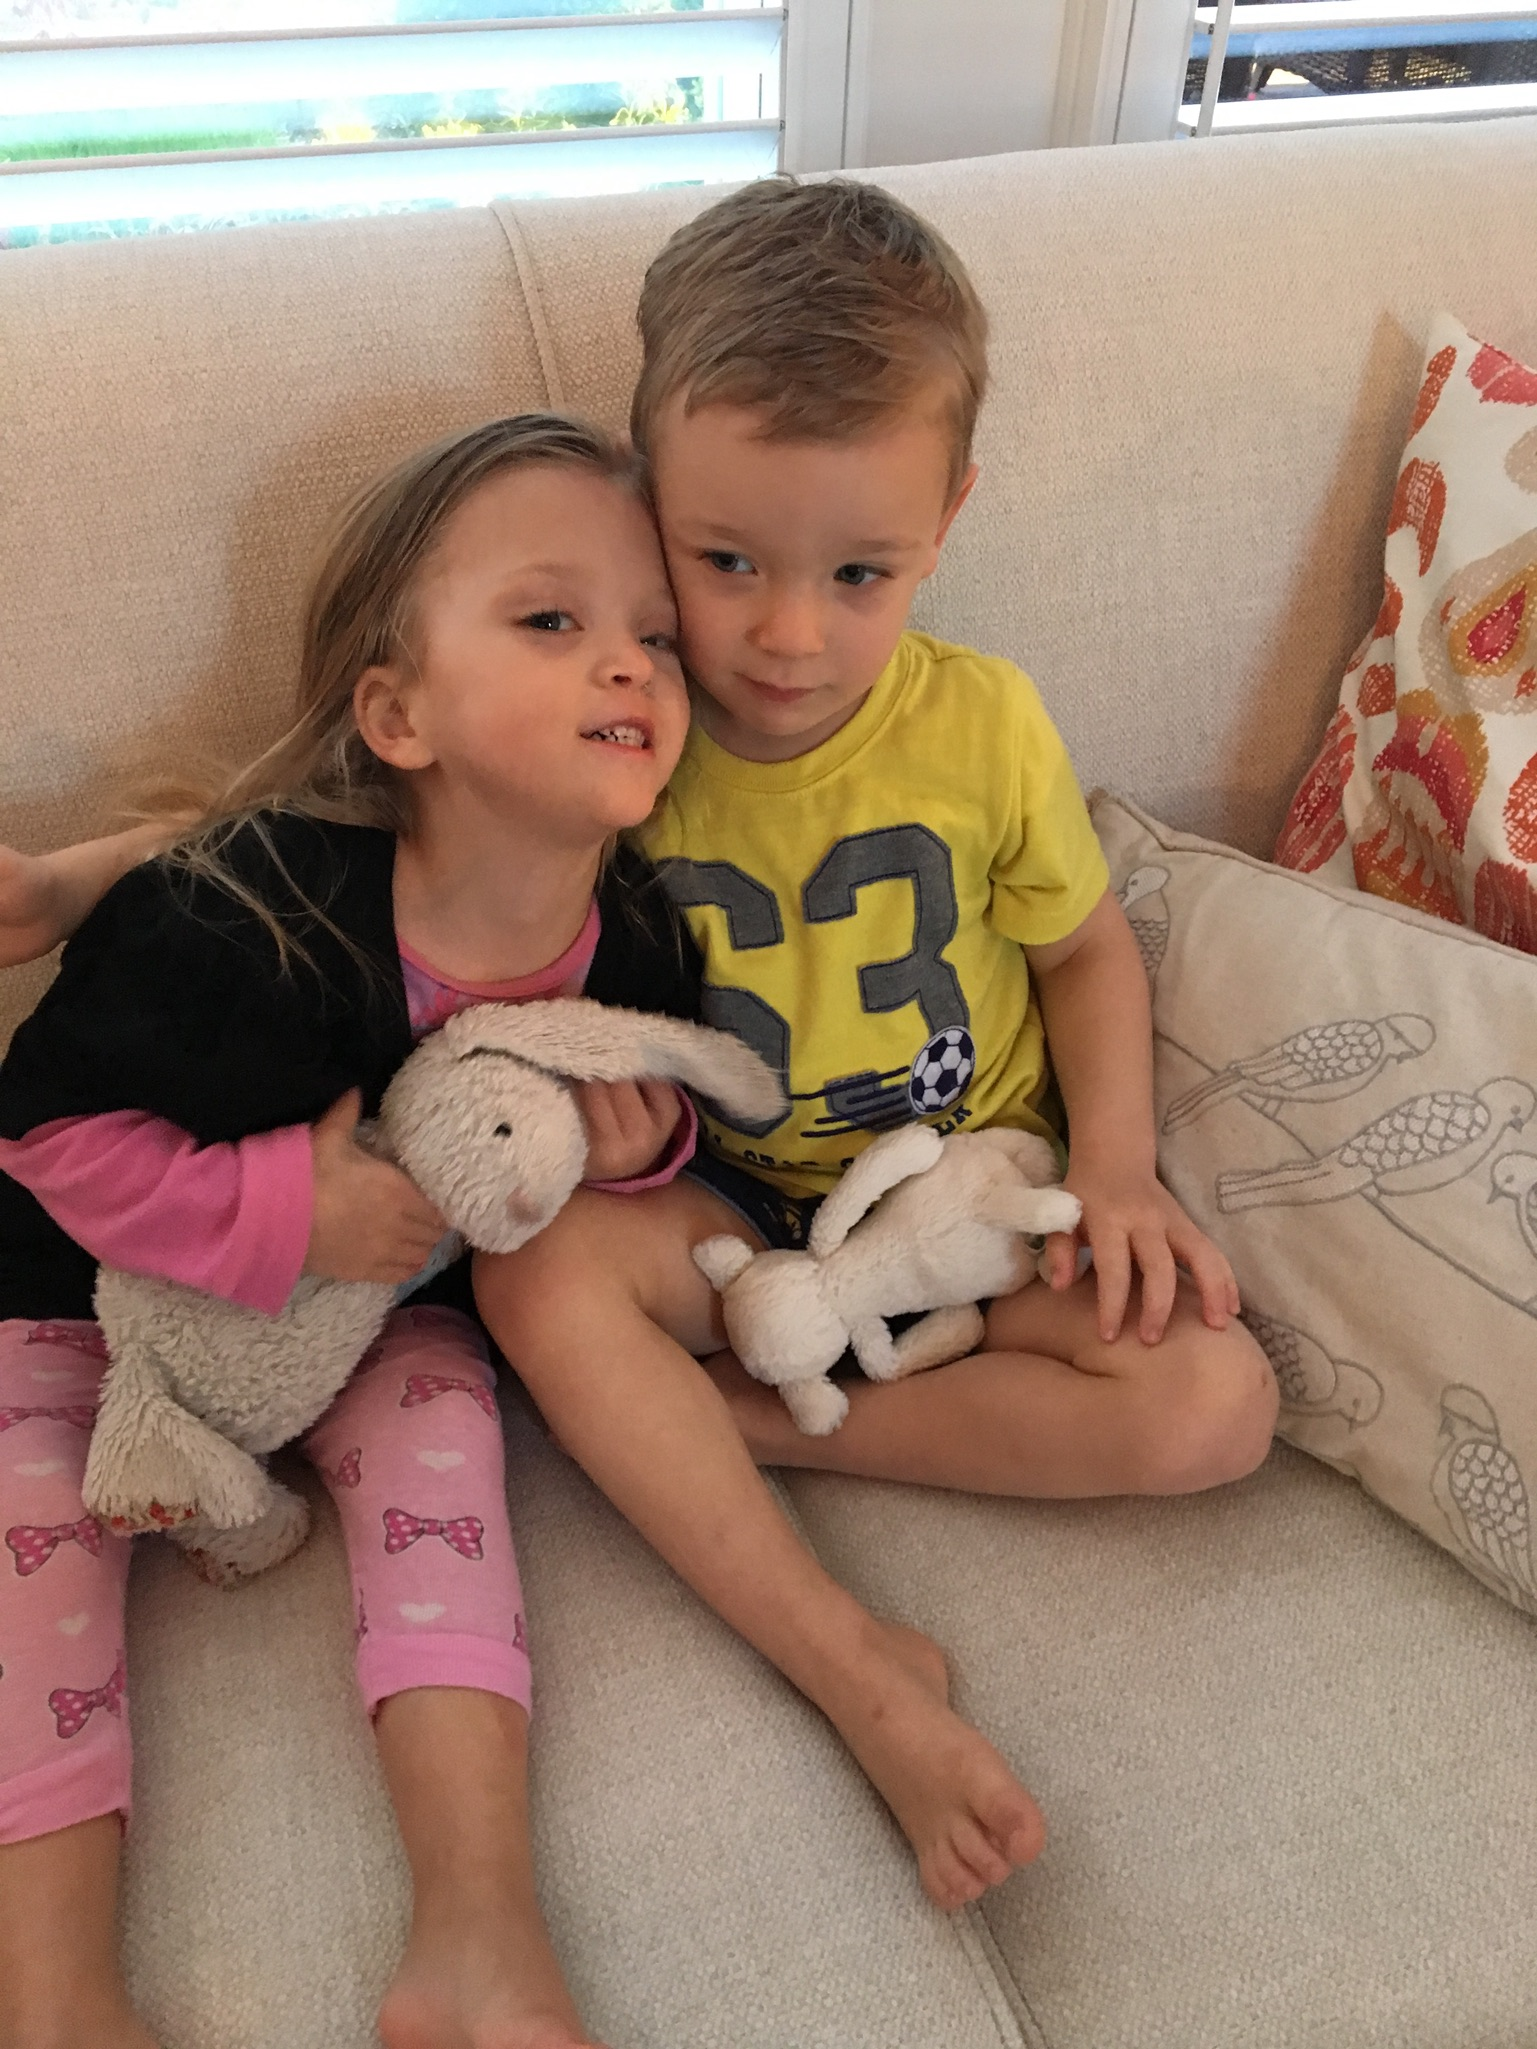 Lucie and her buddy, Luke.